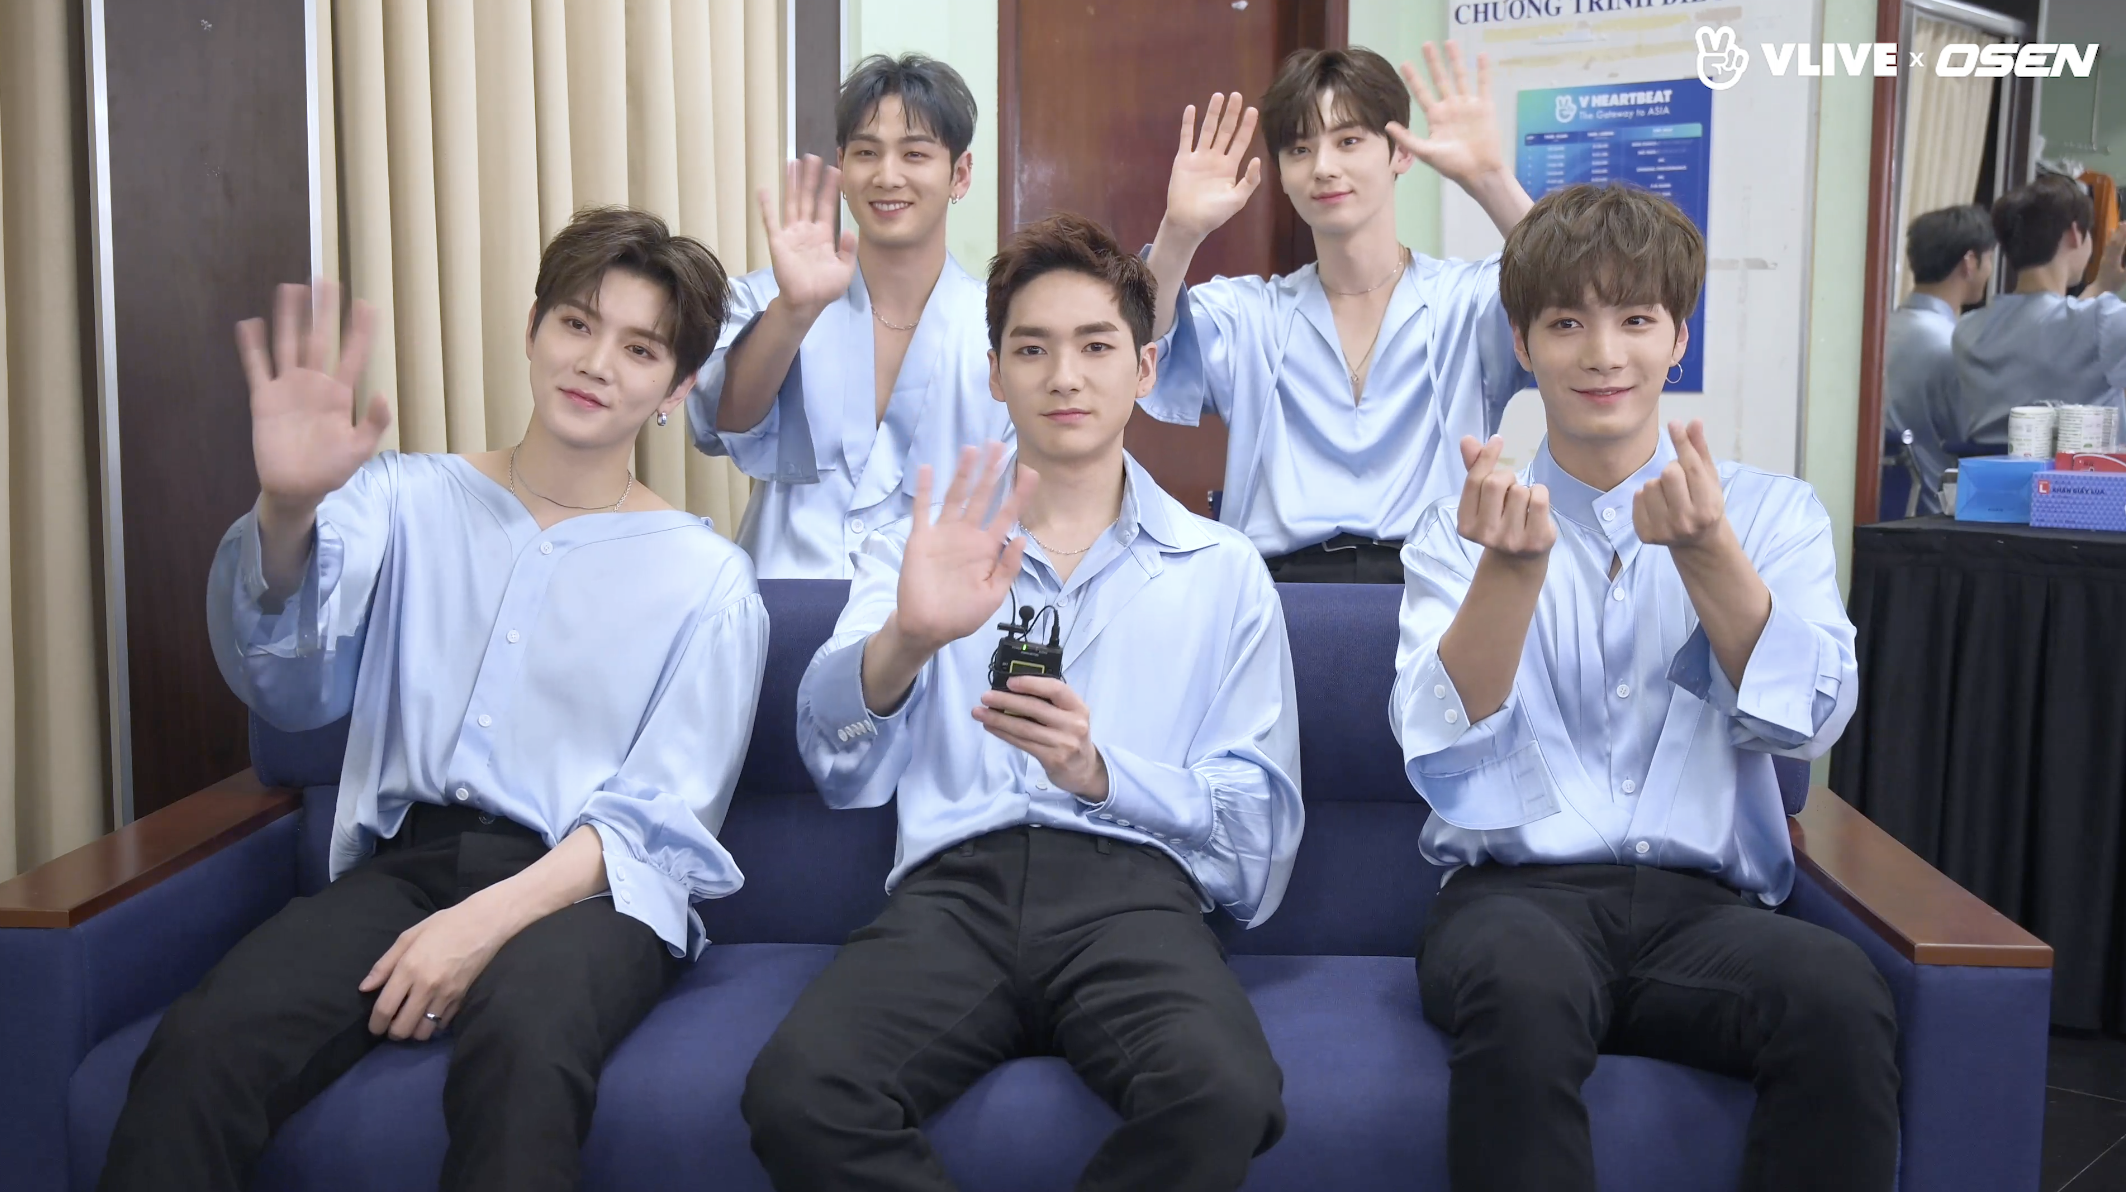 NU'EST 뉴이스트, 인터뷰 대공개 in Vietnam NU'EST, interview in Vietnam